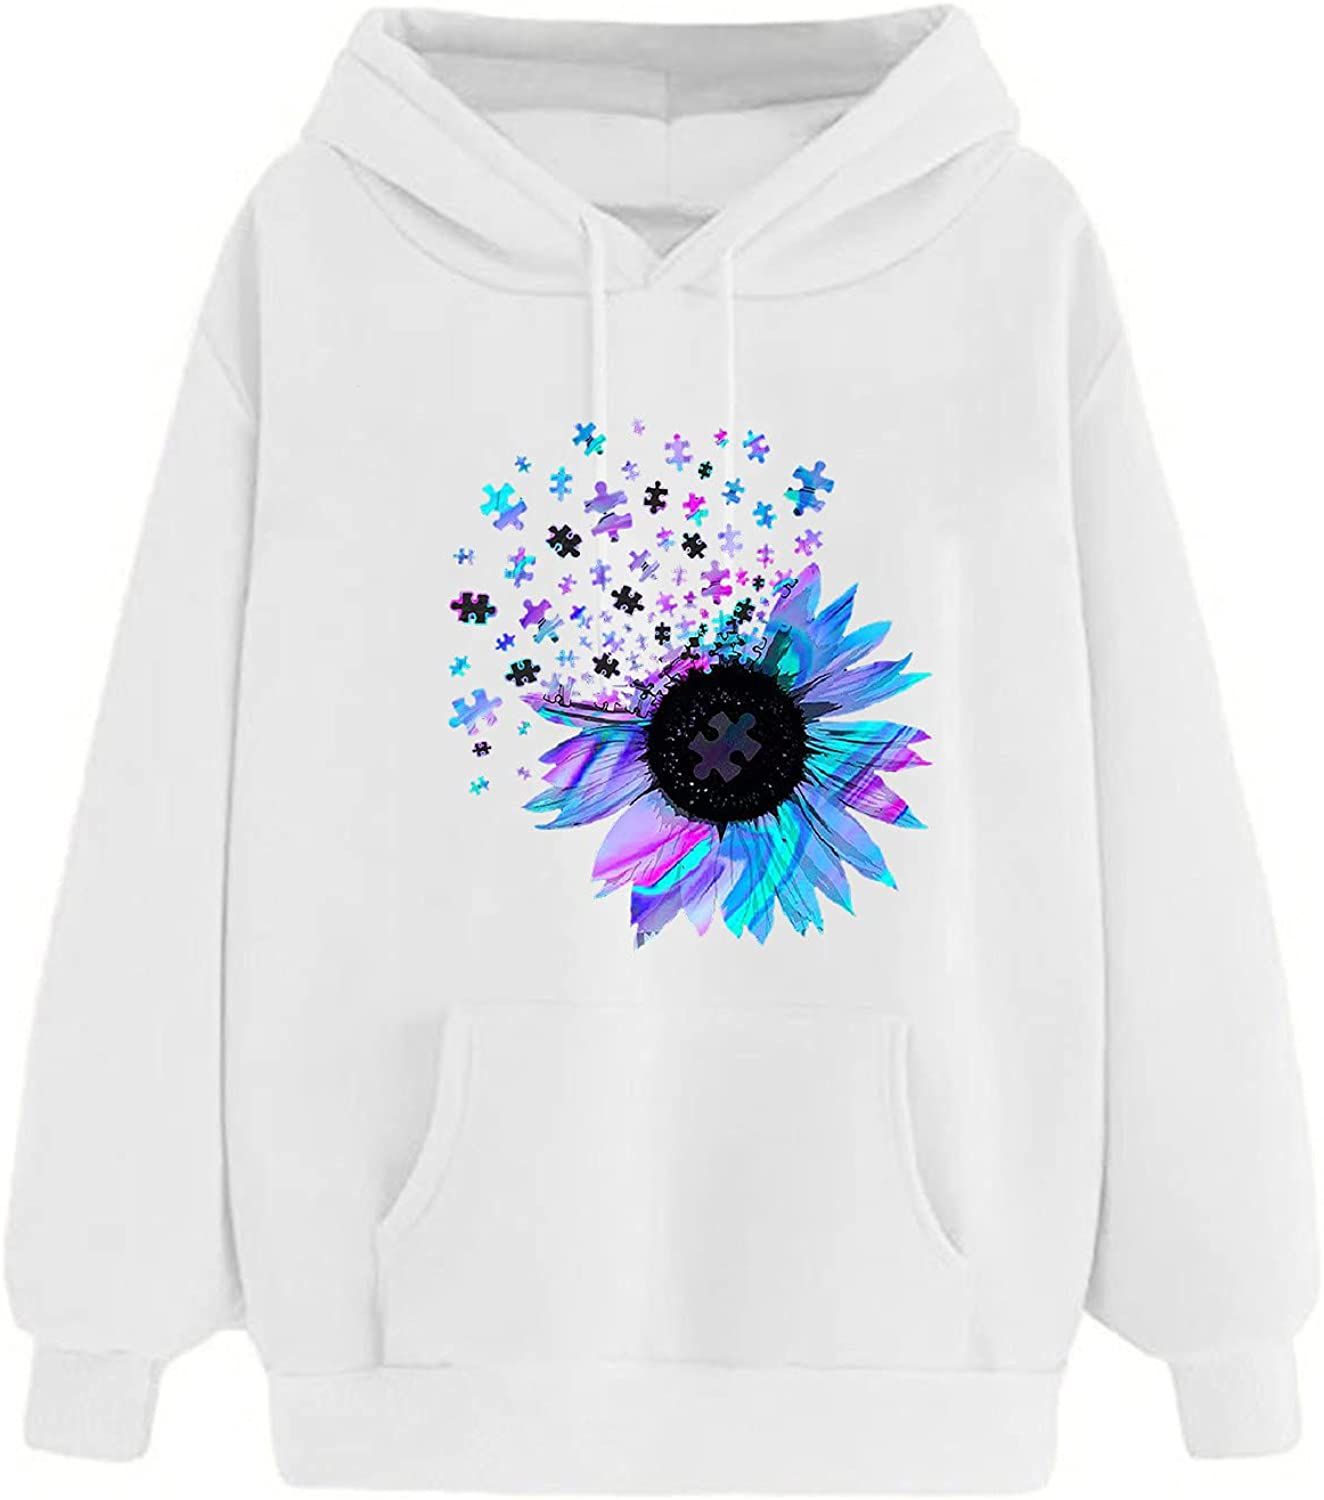 VonVonCo Pullover Sweaters for Women Cartoon Print Plus Size Long Sleeve Wear A Hat Sweatshirt Pullover Top Blouses